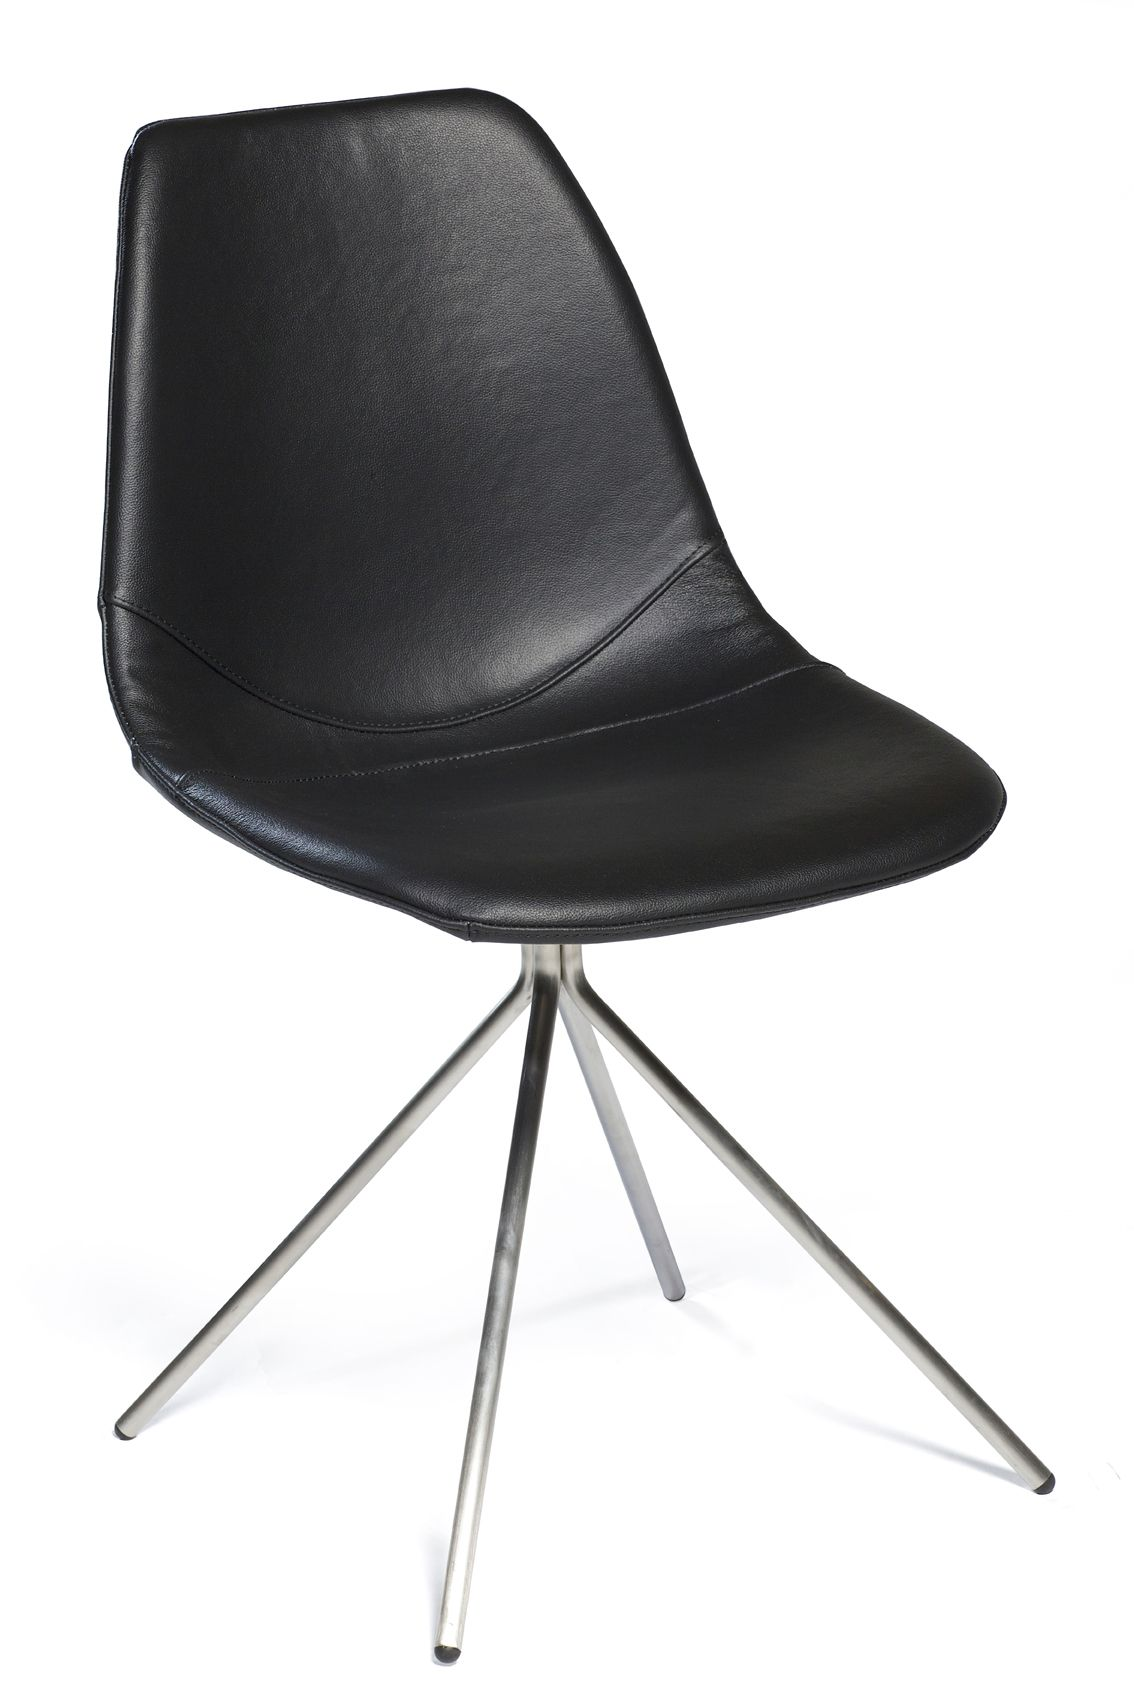 Spider Chair With Black Leather And Stainless Steel Legs